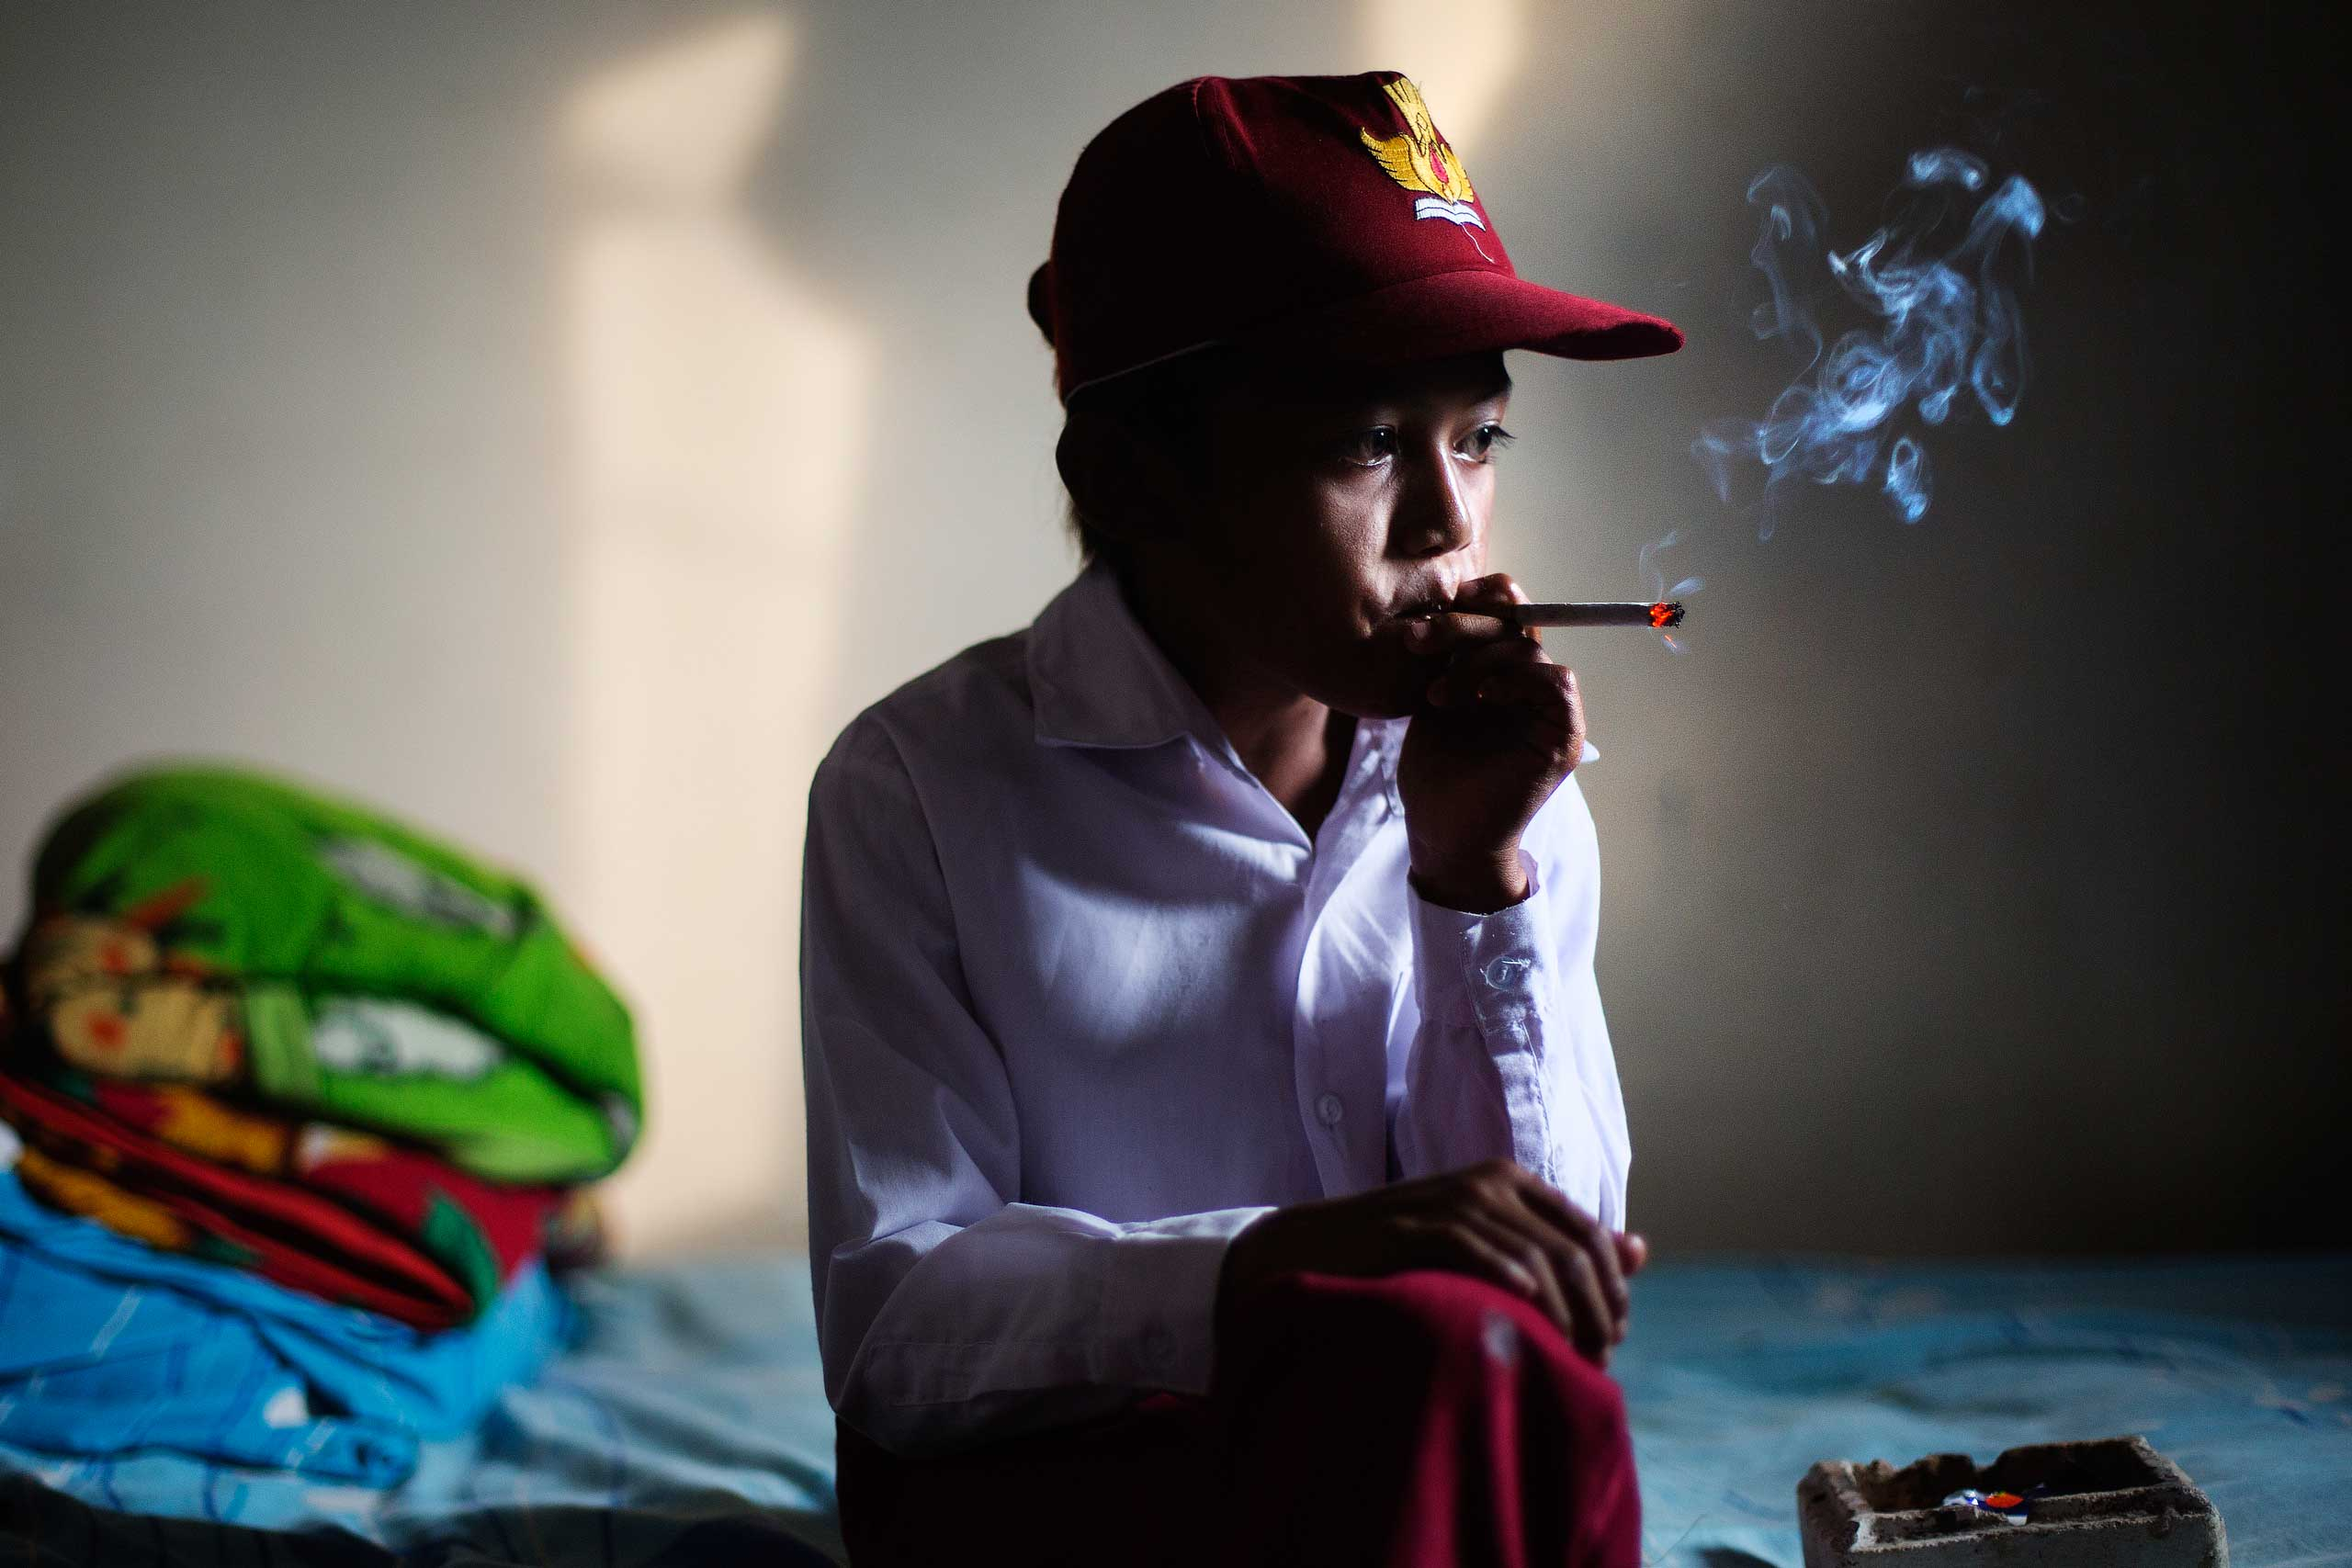 Ilham Hadi, who has smoked up to two packs a day and began when he was four years old, poses for a photo wearing his third grade uniform while smoking in his bedroom in a village near the town of Sukabumi, Indonesia on February 14, 2014.